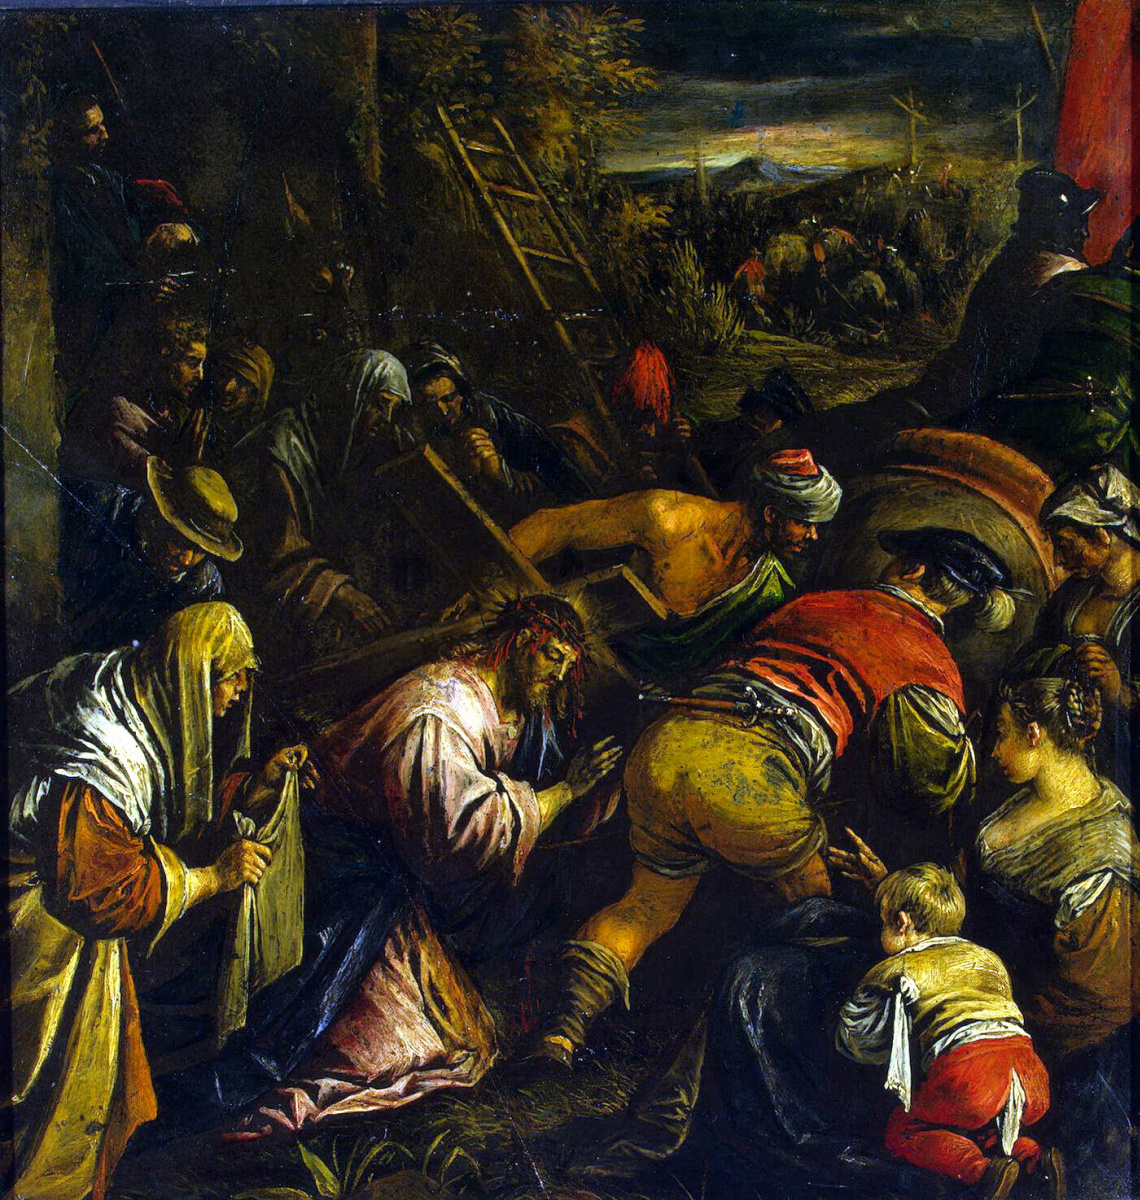 Leandro Bassano. The carrying of the cross